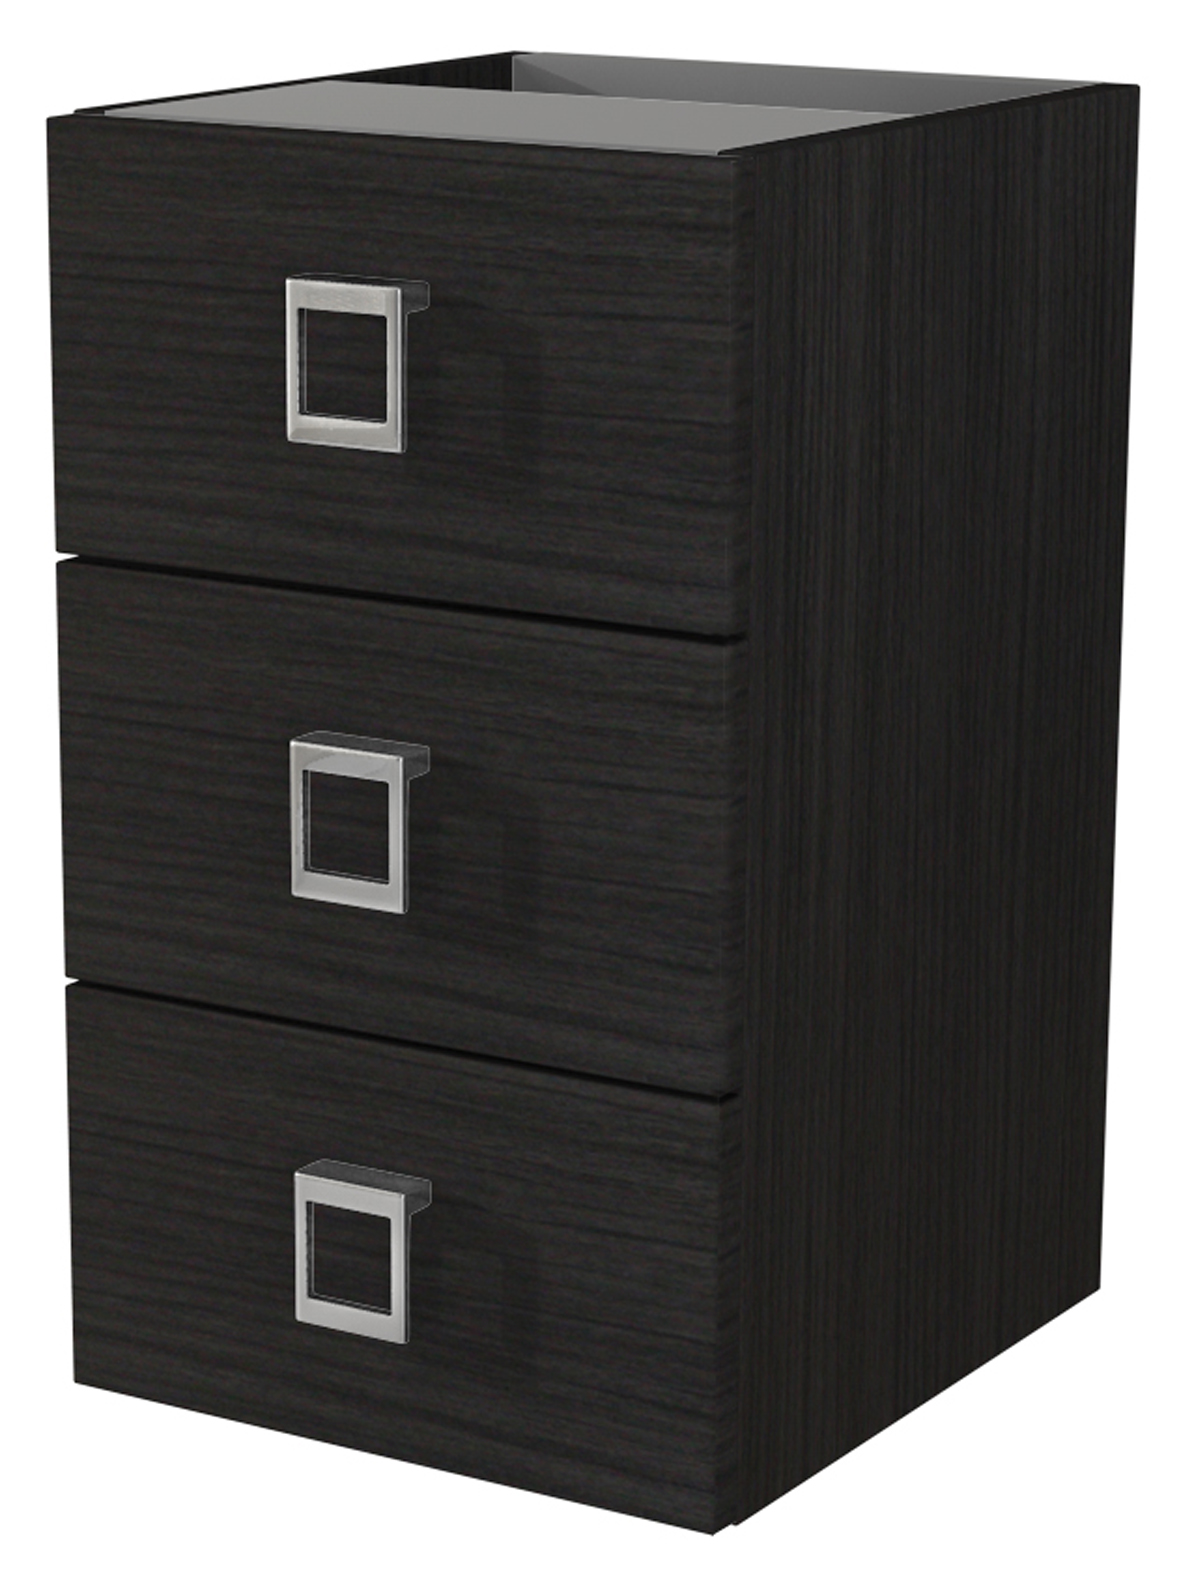 "Baden Haus 44405 11.8"" Florida Collection Dark Gray Vein Chest Side Cabinet with 3 Drawers"